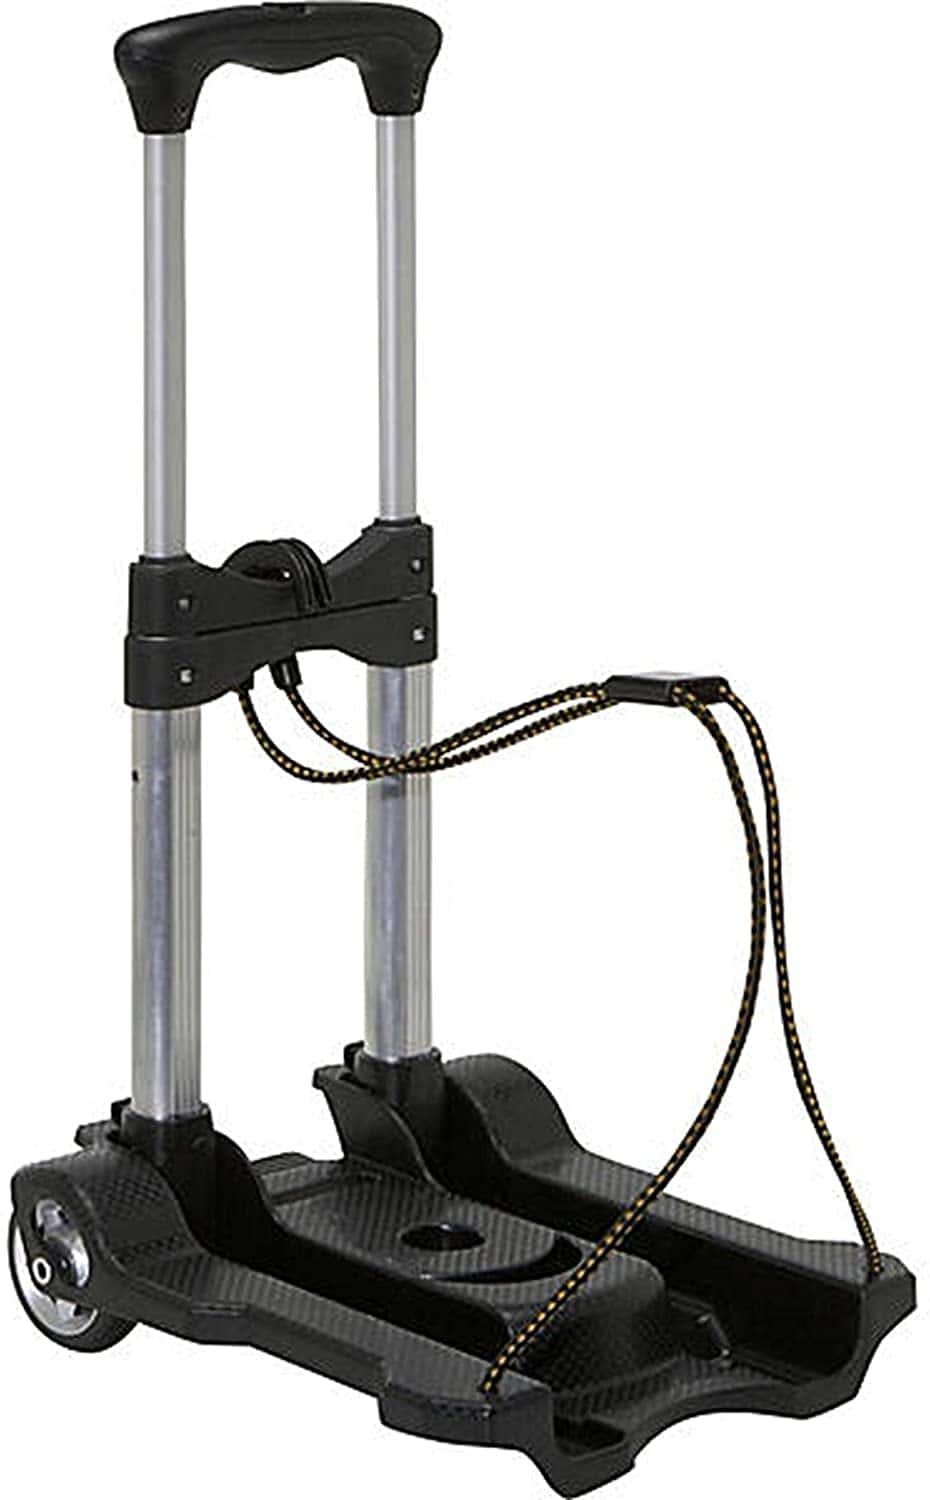 Samsonite Folding Luggage Cart Black